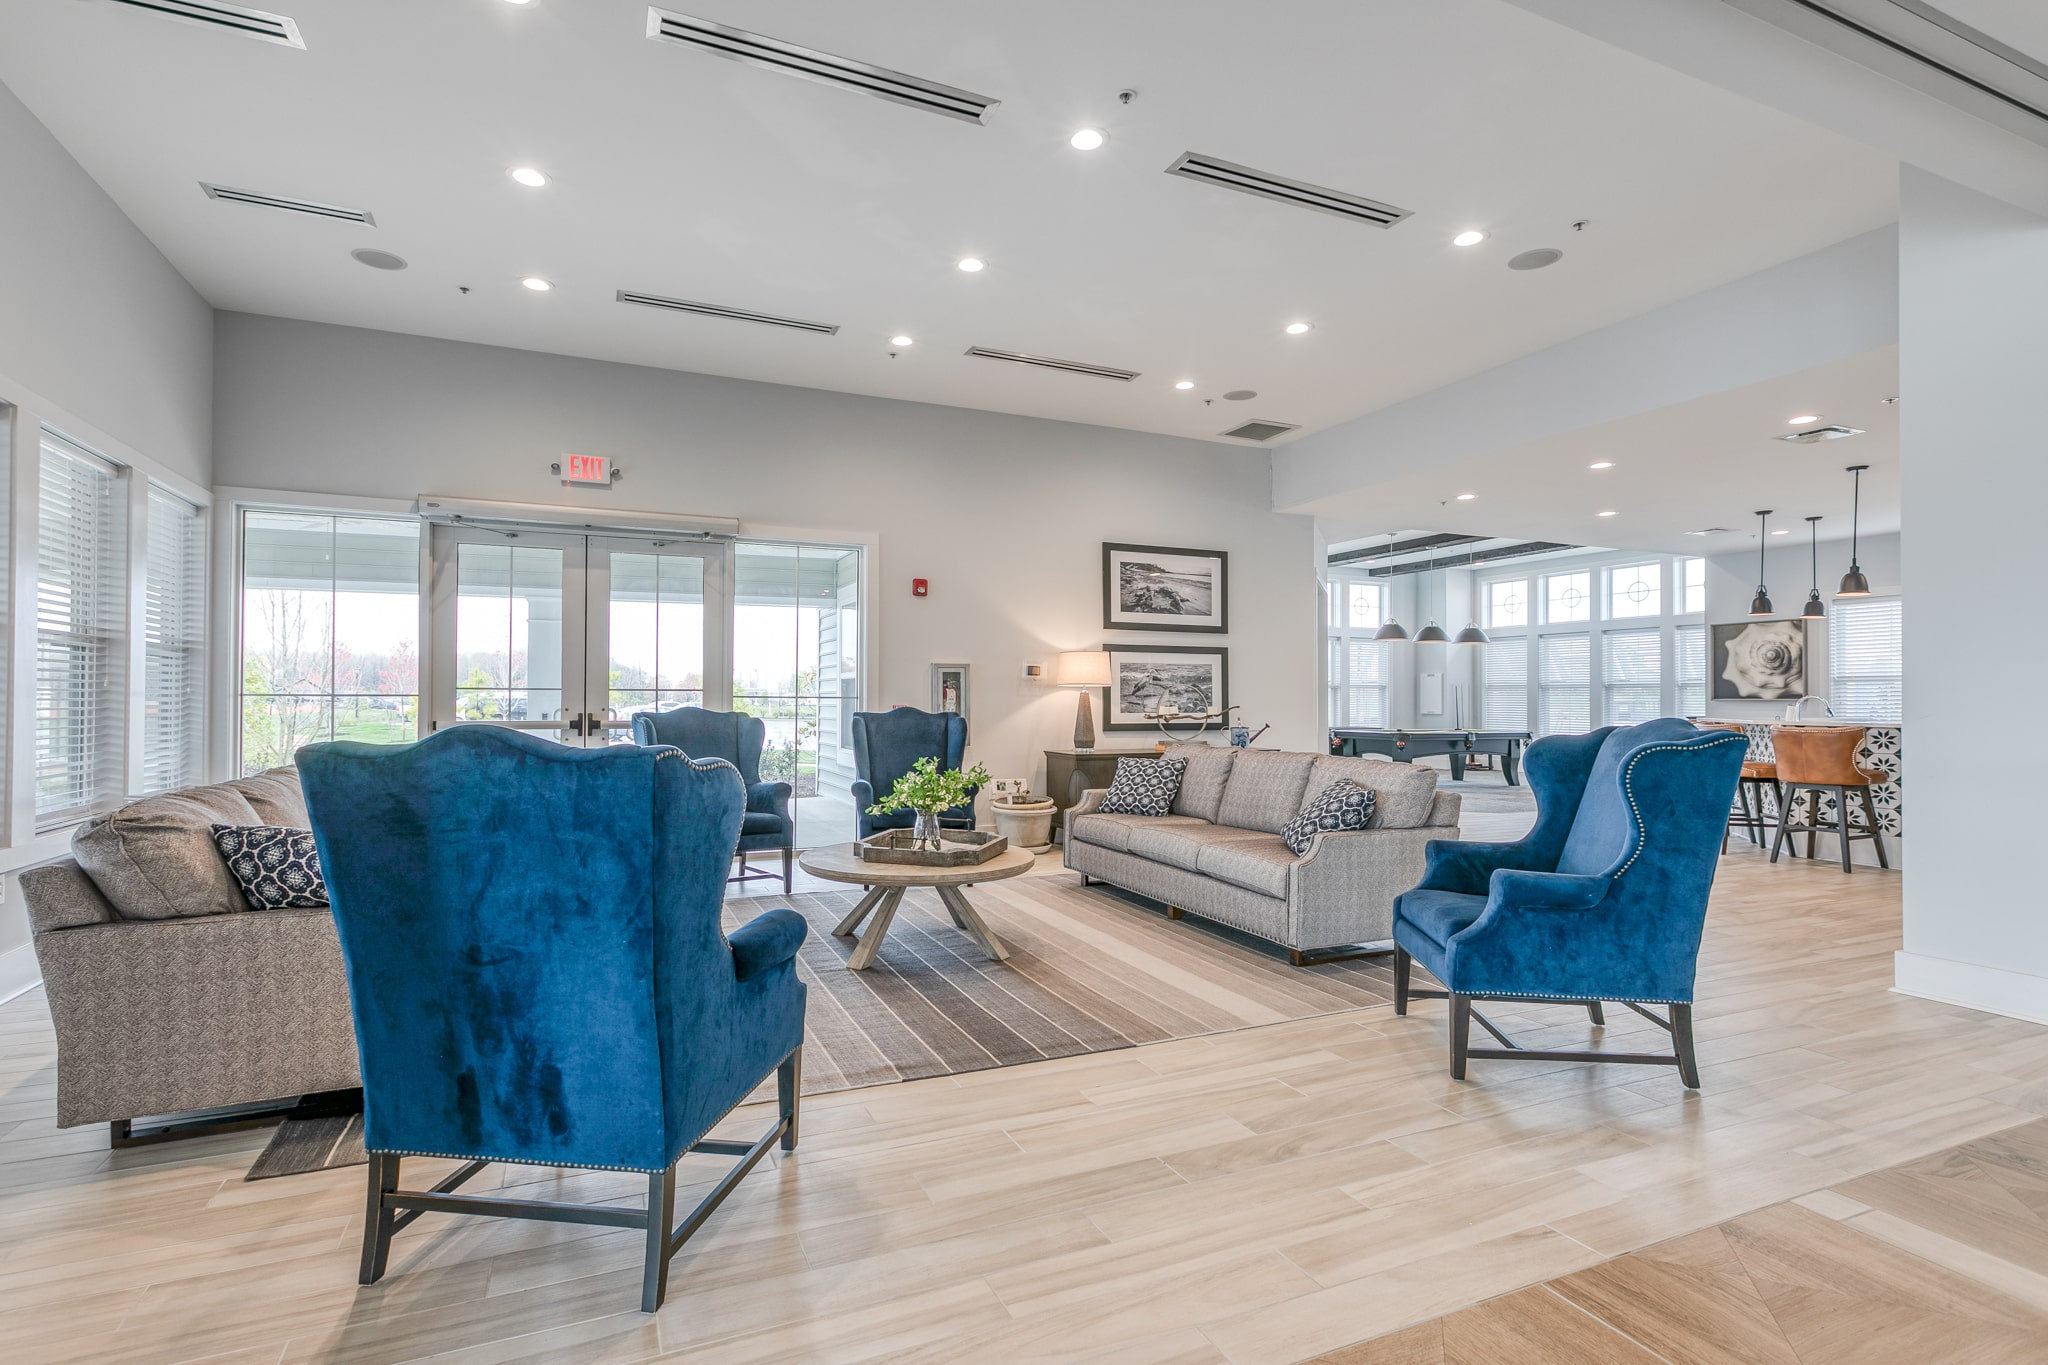 Image of a sitting area inside the Bay Bride Cove Community Clubhouse